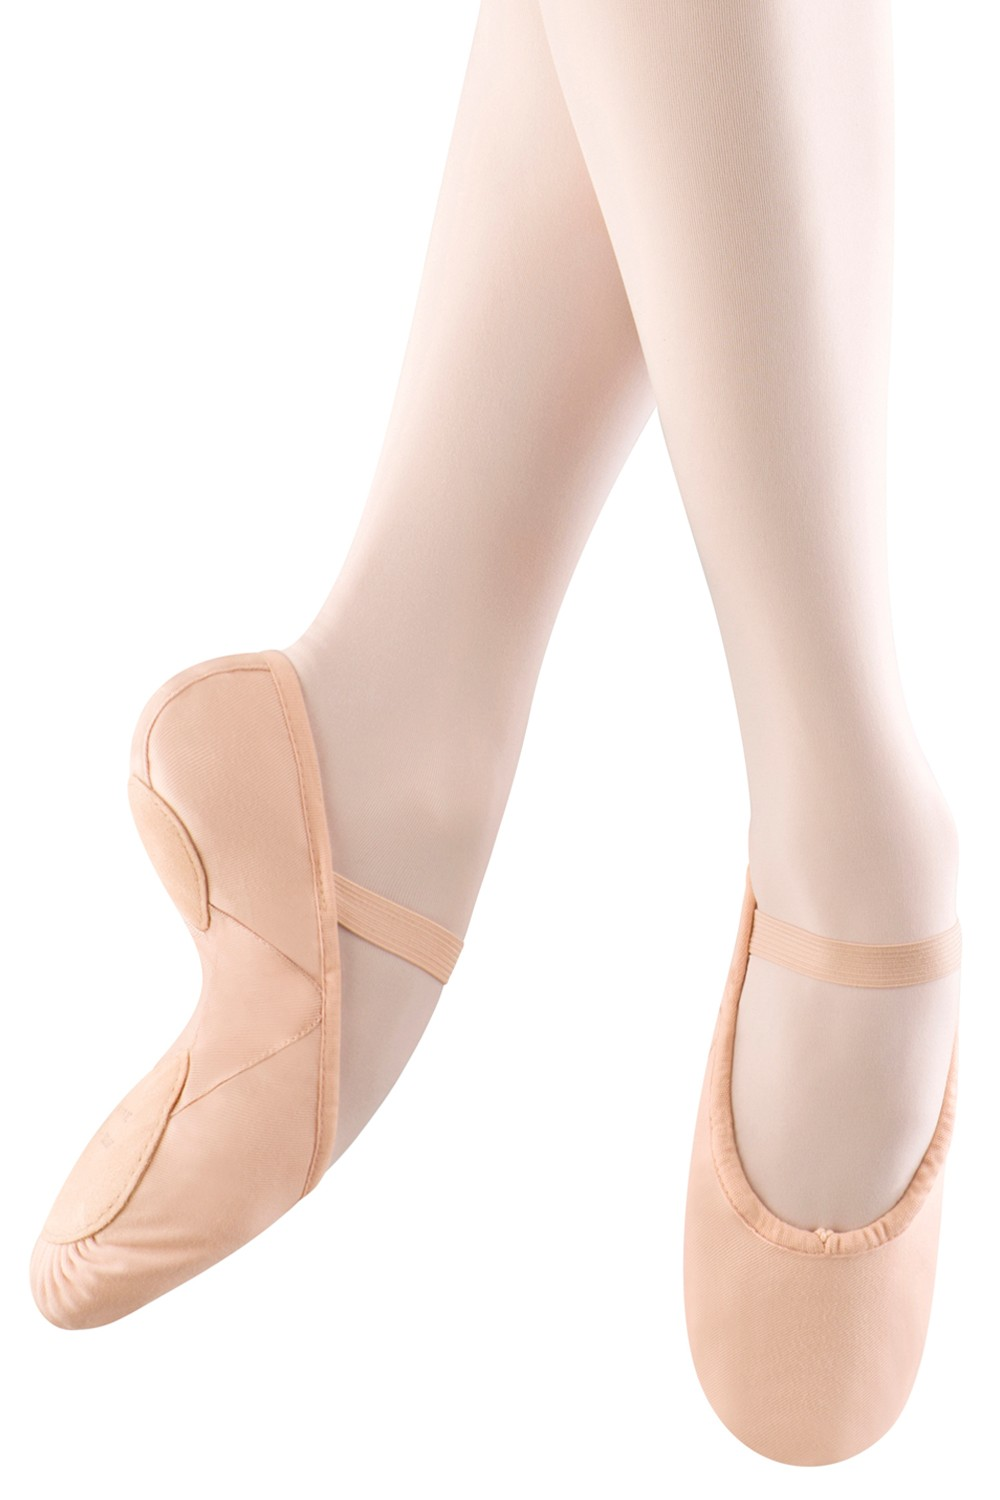 Prolite Ii Tela - Bambina Girl's Ballet Shoes